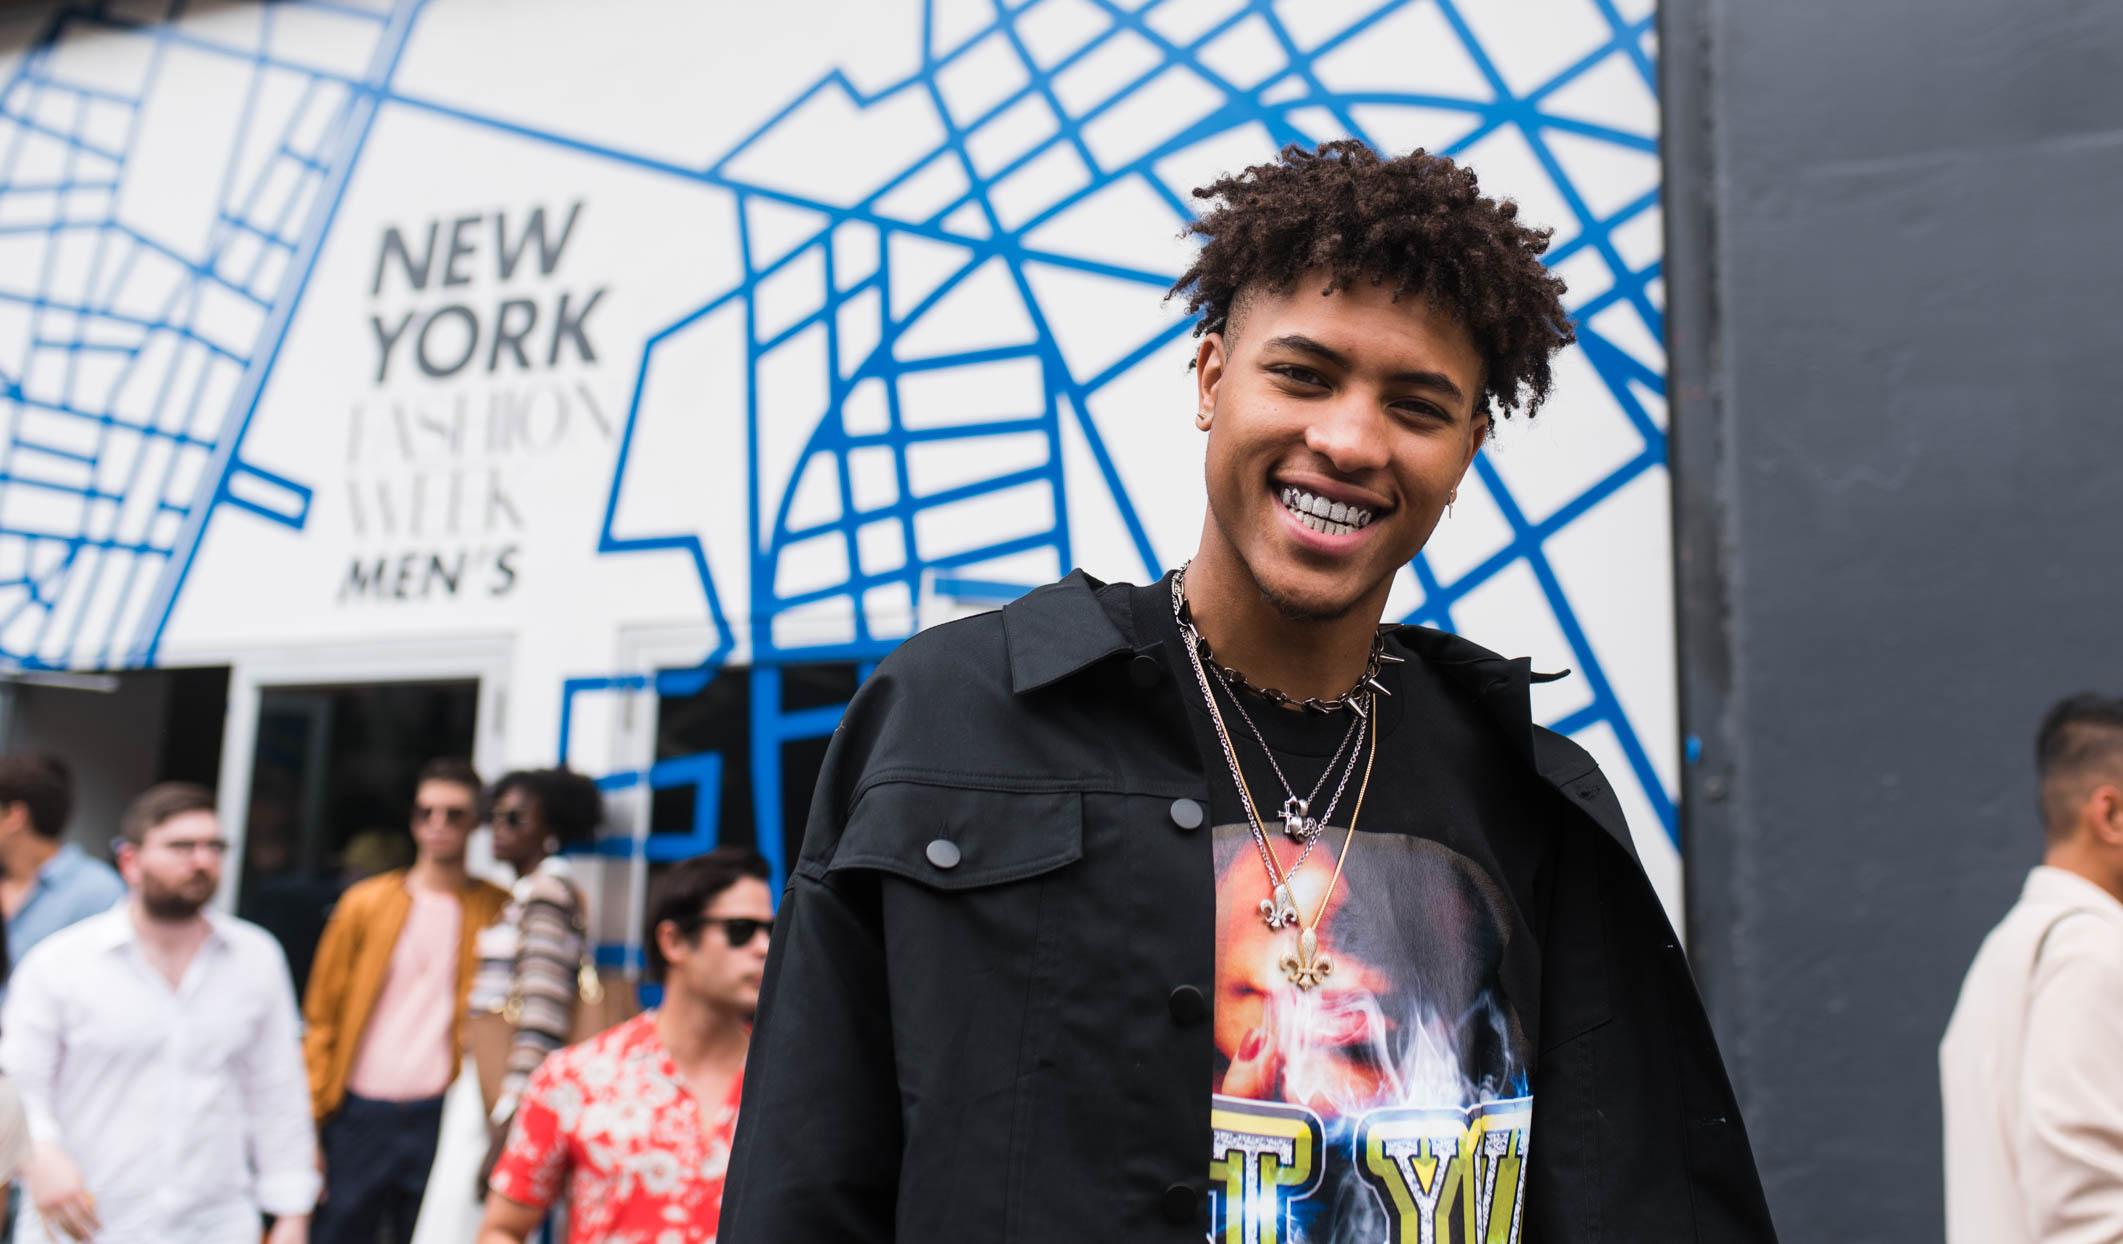 kelly oubre jr. at new york fashion week